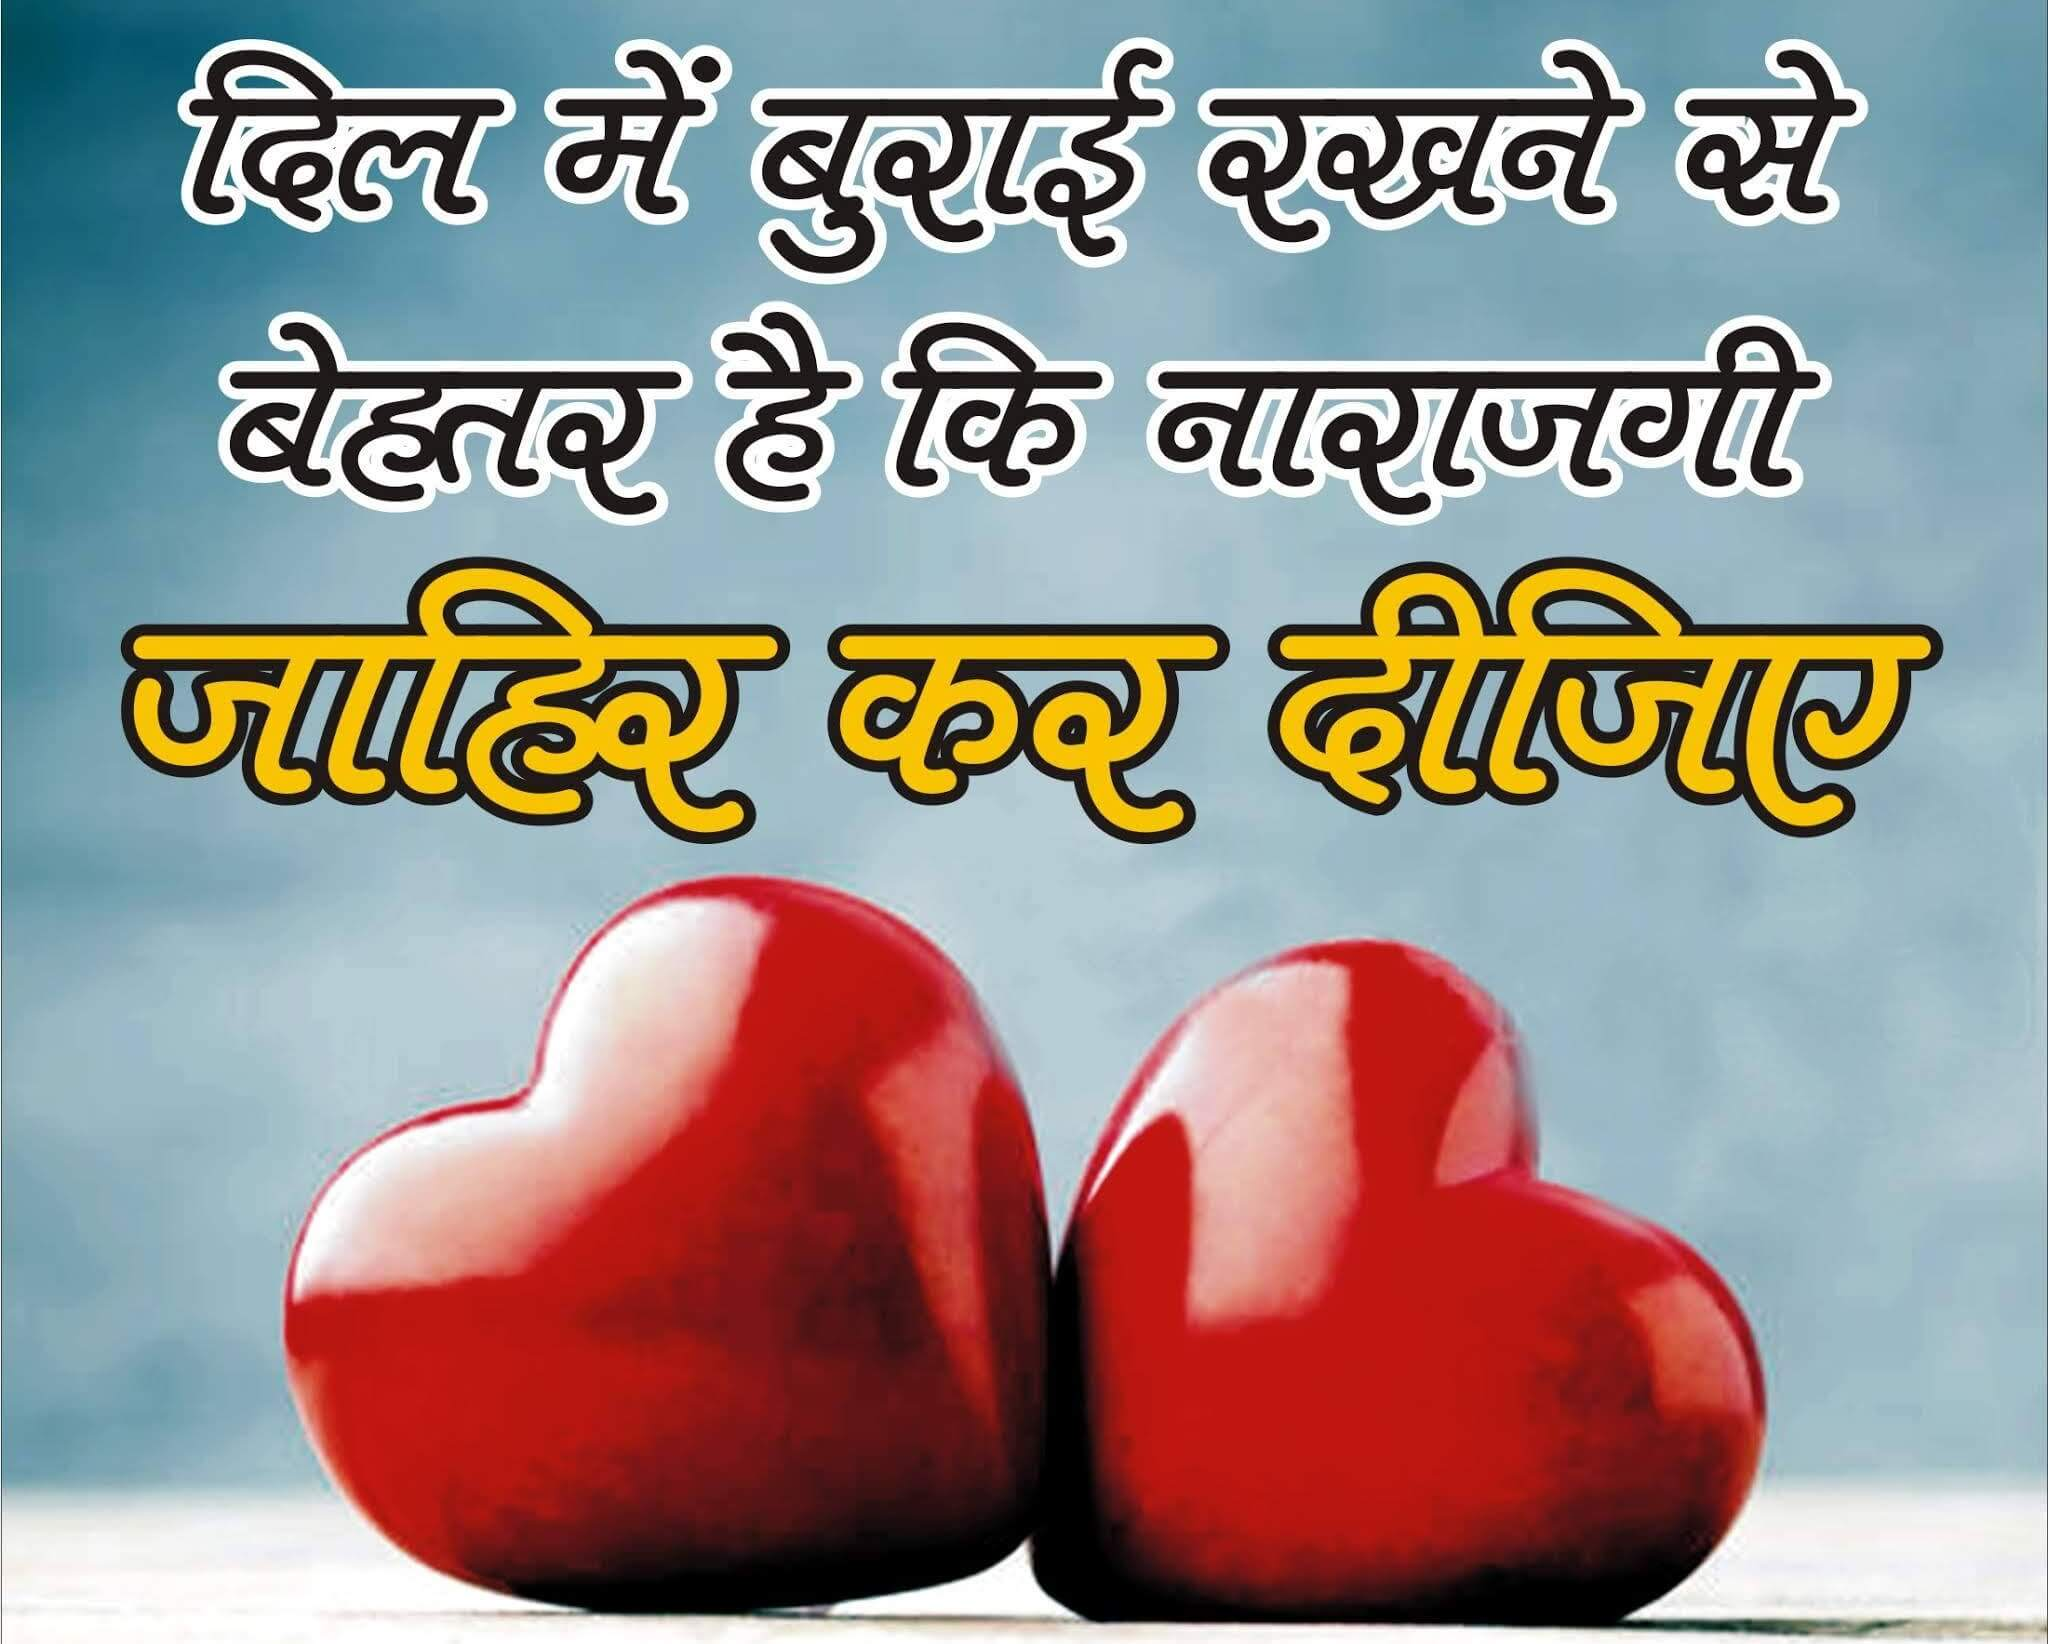 Hindi Images Motivational Quotes